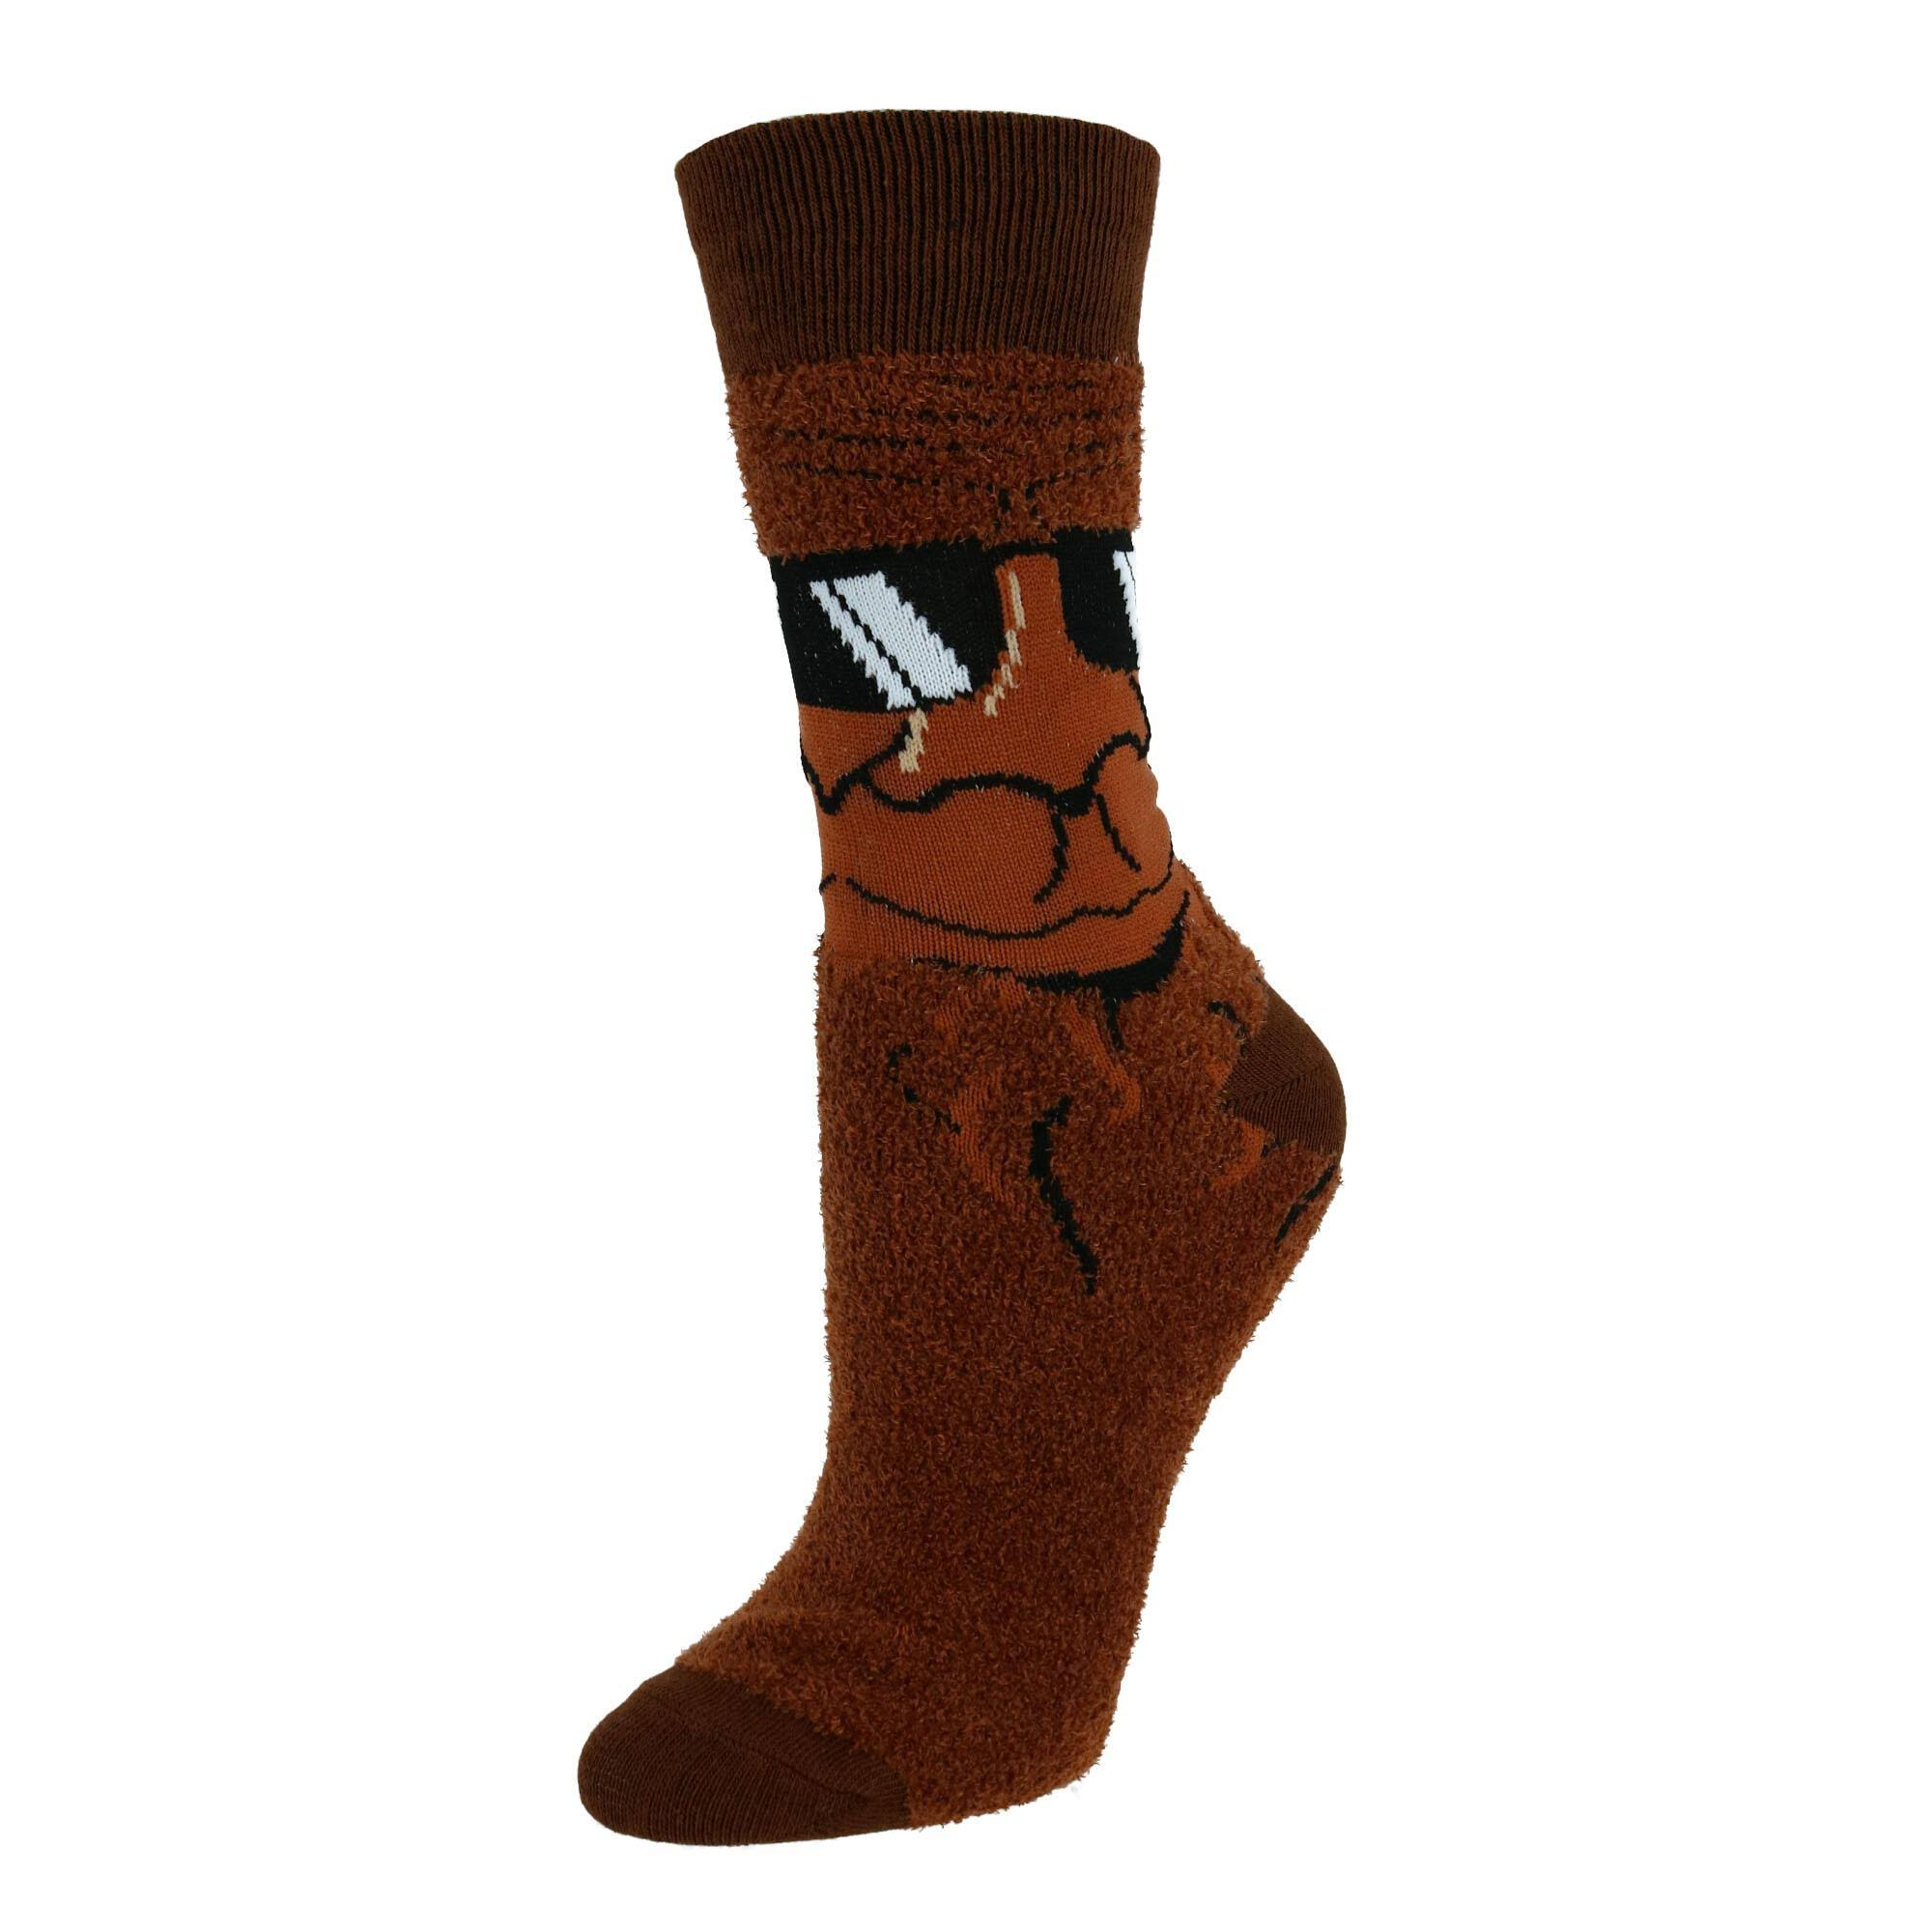 Two Left Feet Women's Super Soft Fuzzy Crew Socks - Brown Small